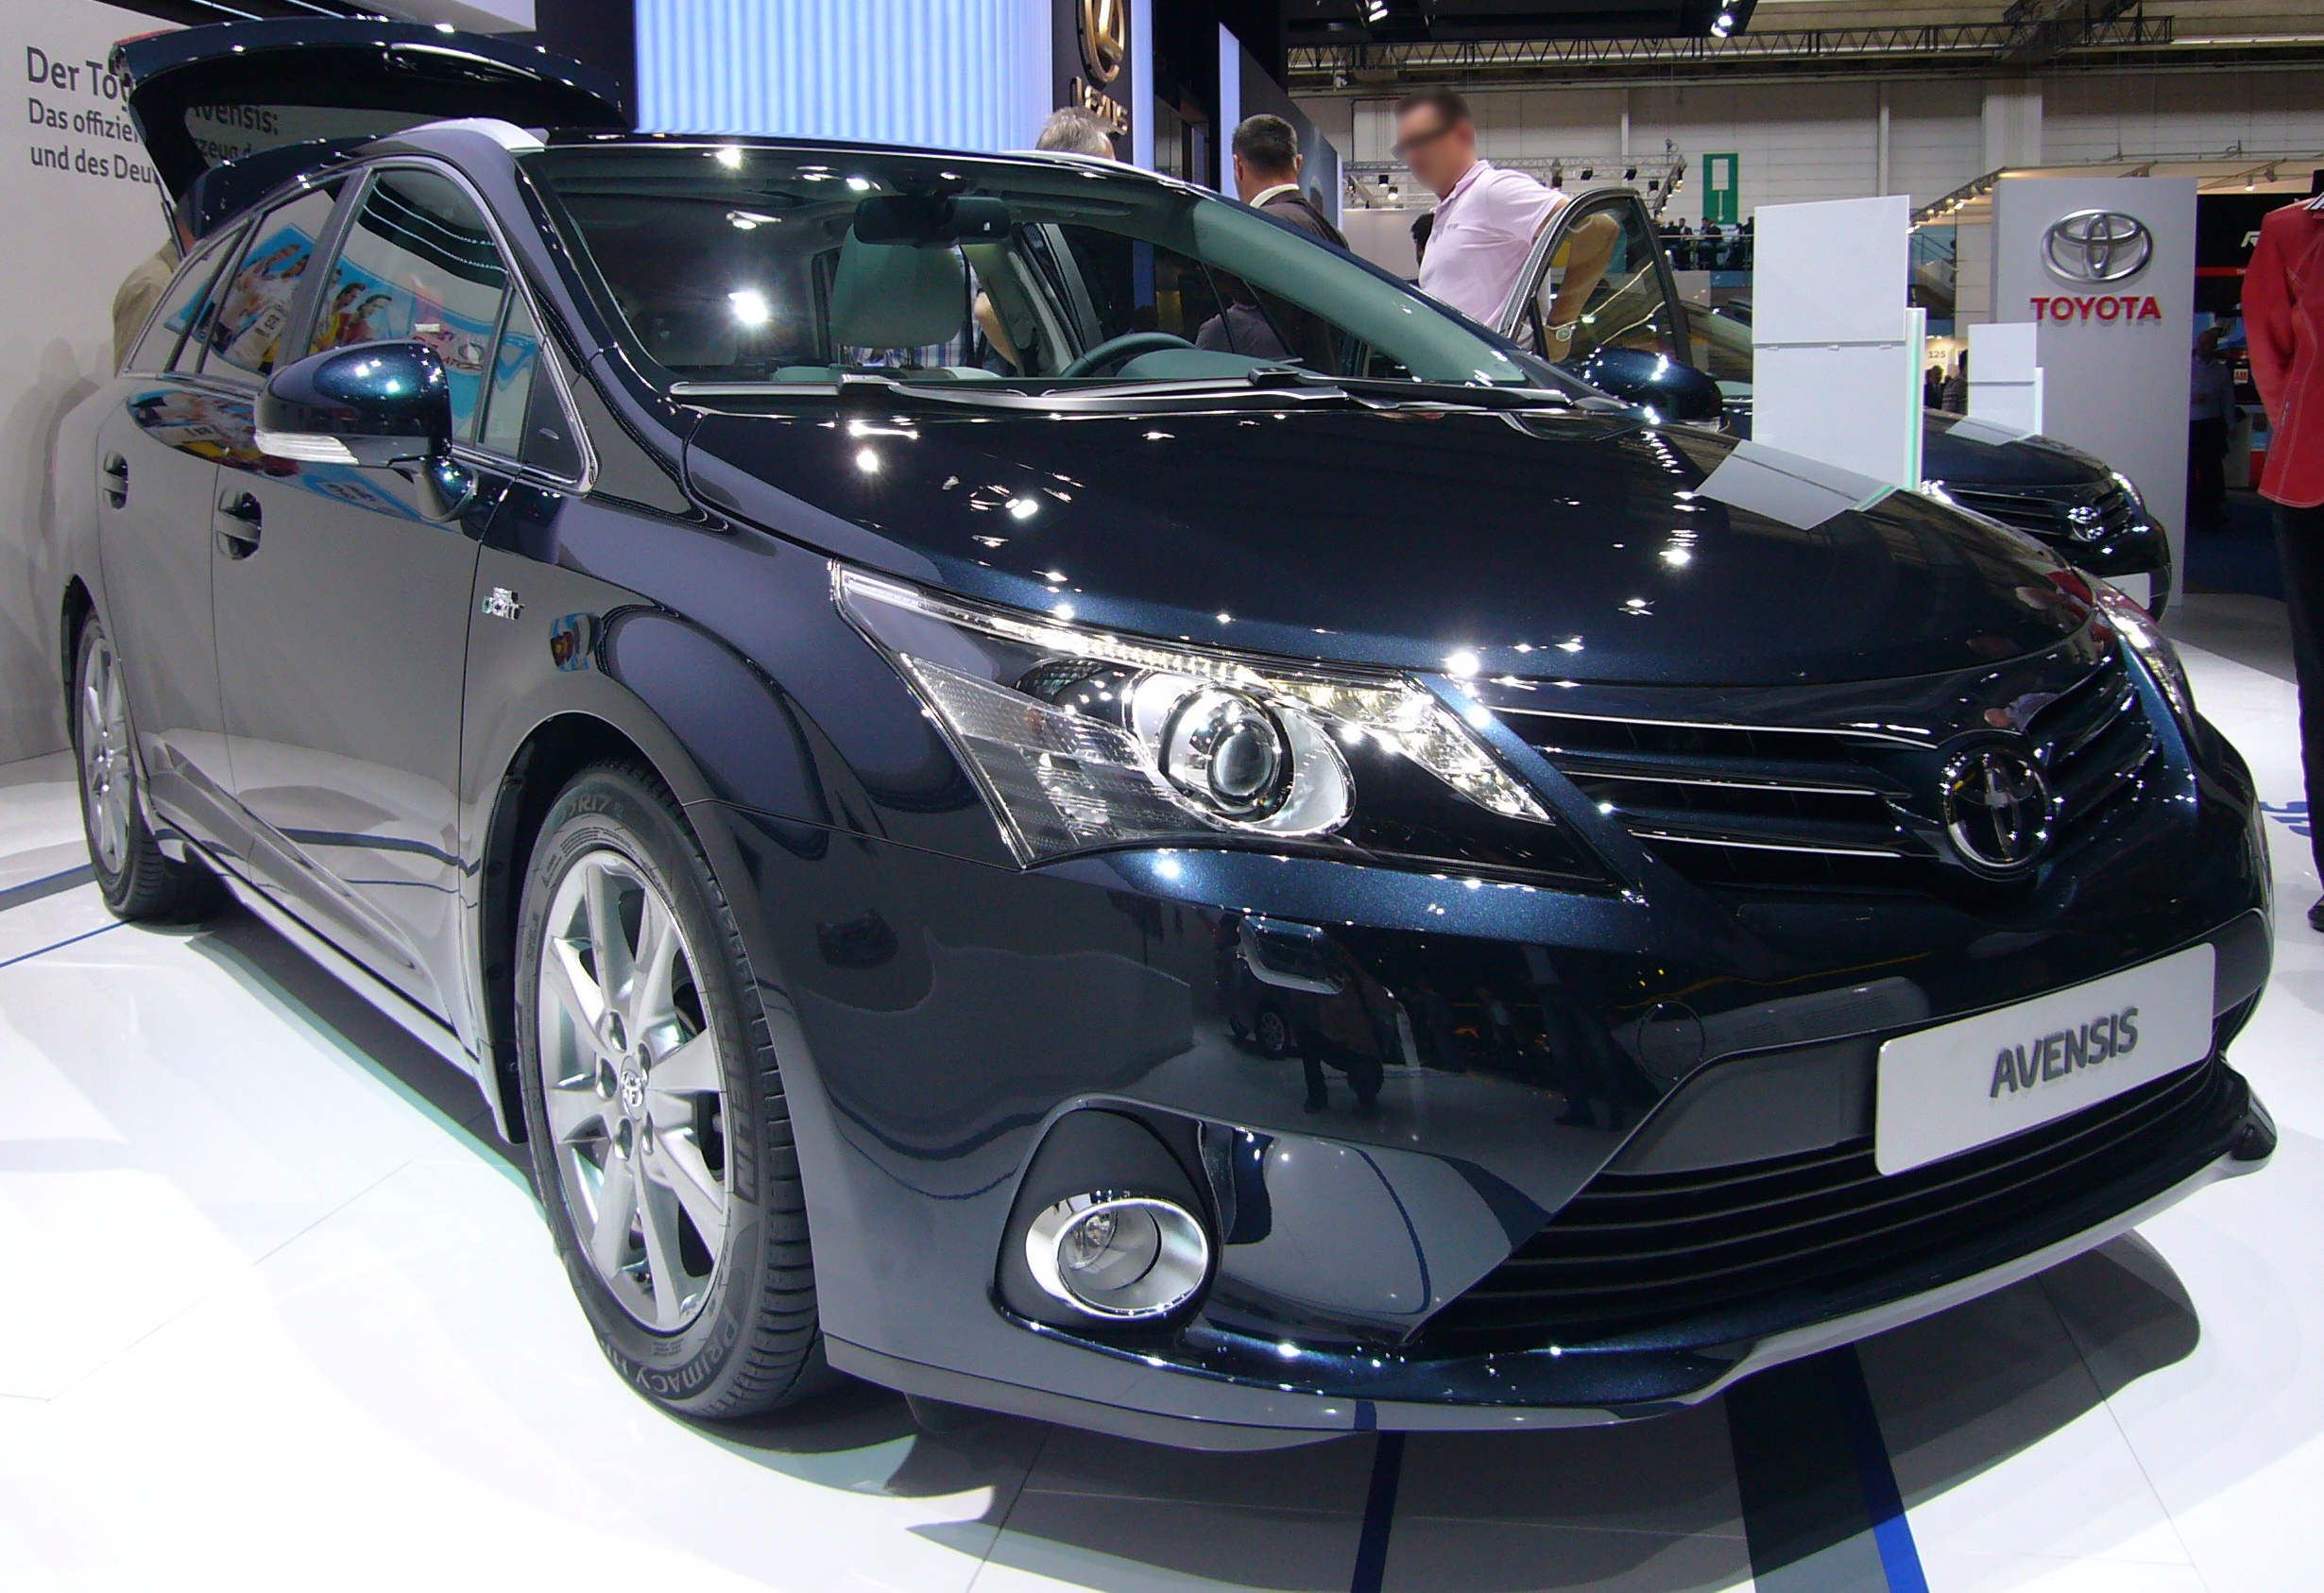 file toyota avensis wagon facelift front jpg wikimedia commons. Black Bedroom Furniture Sets. Home Design Ideas